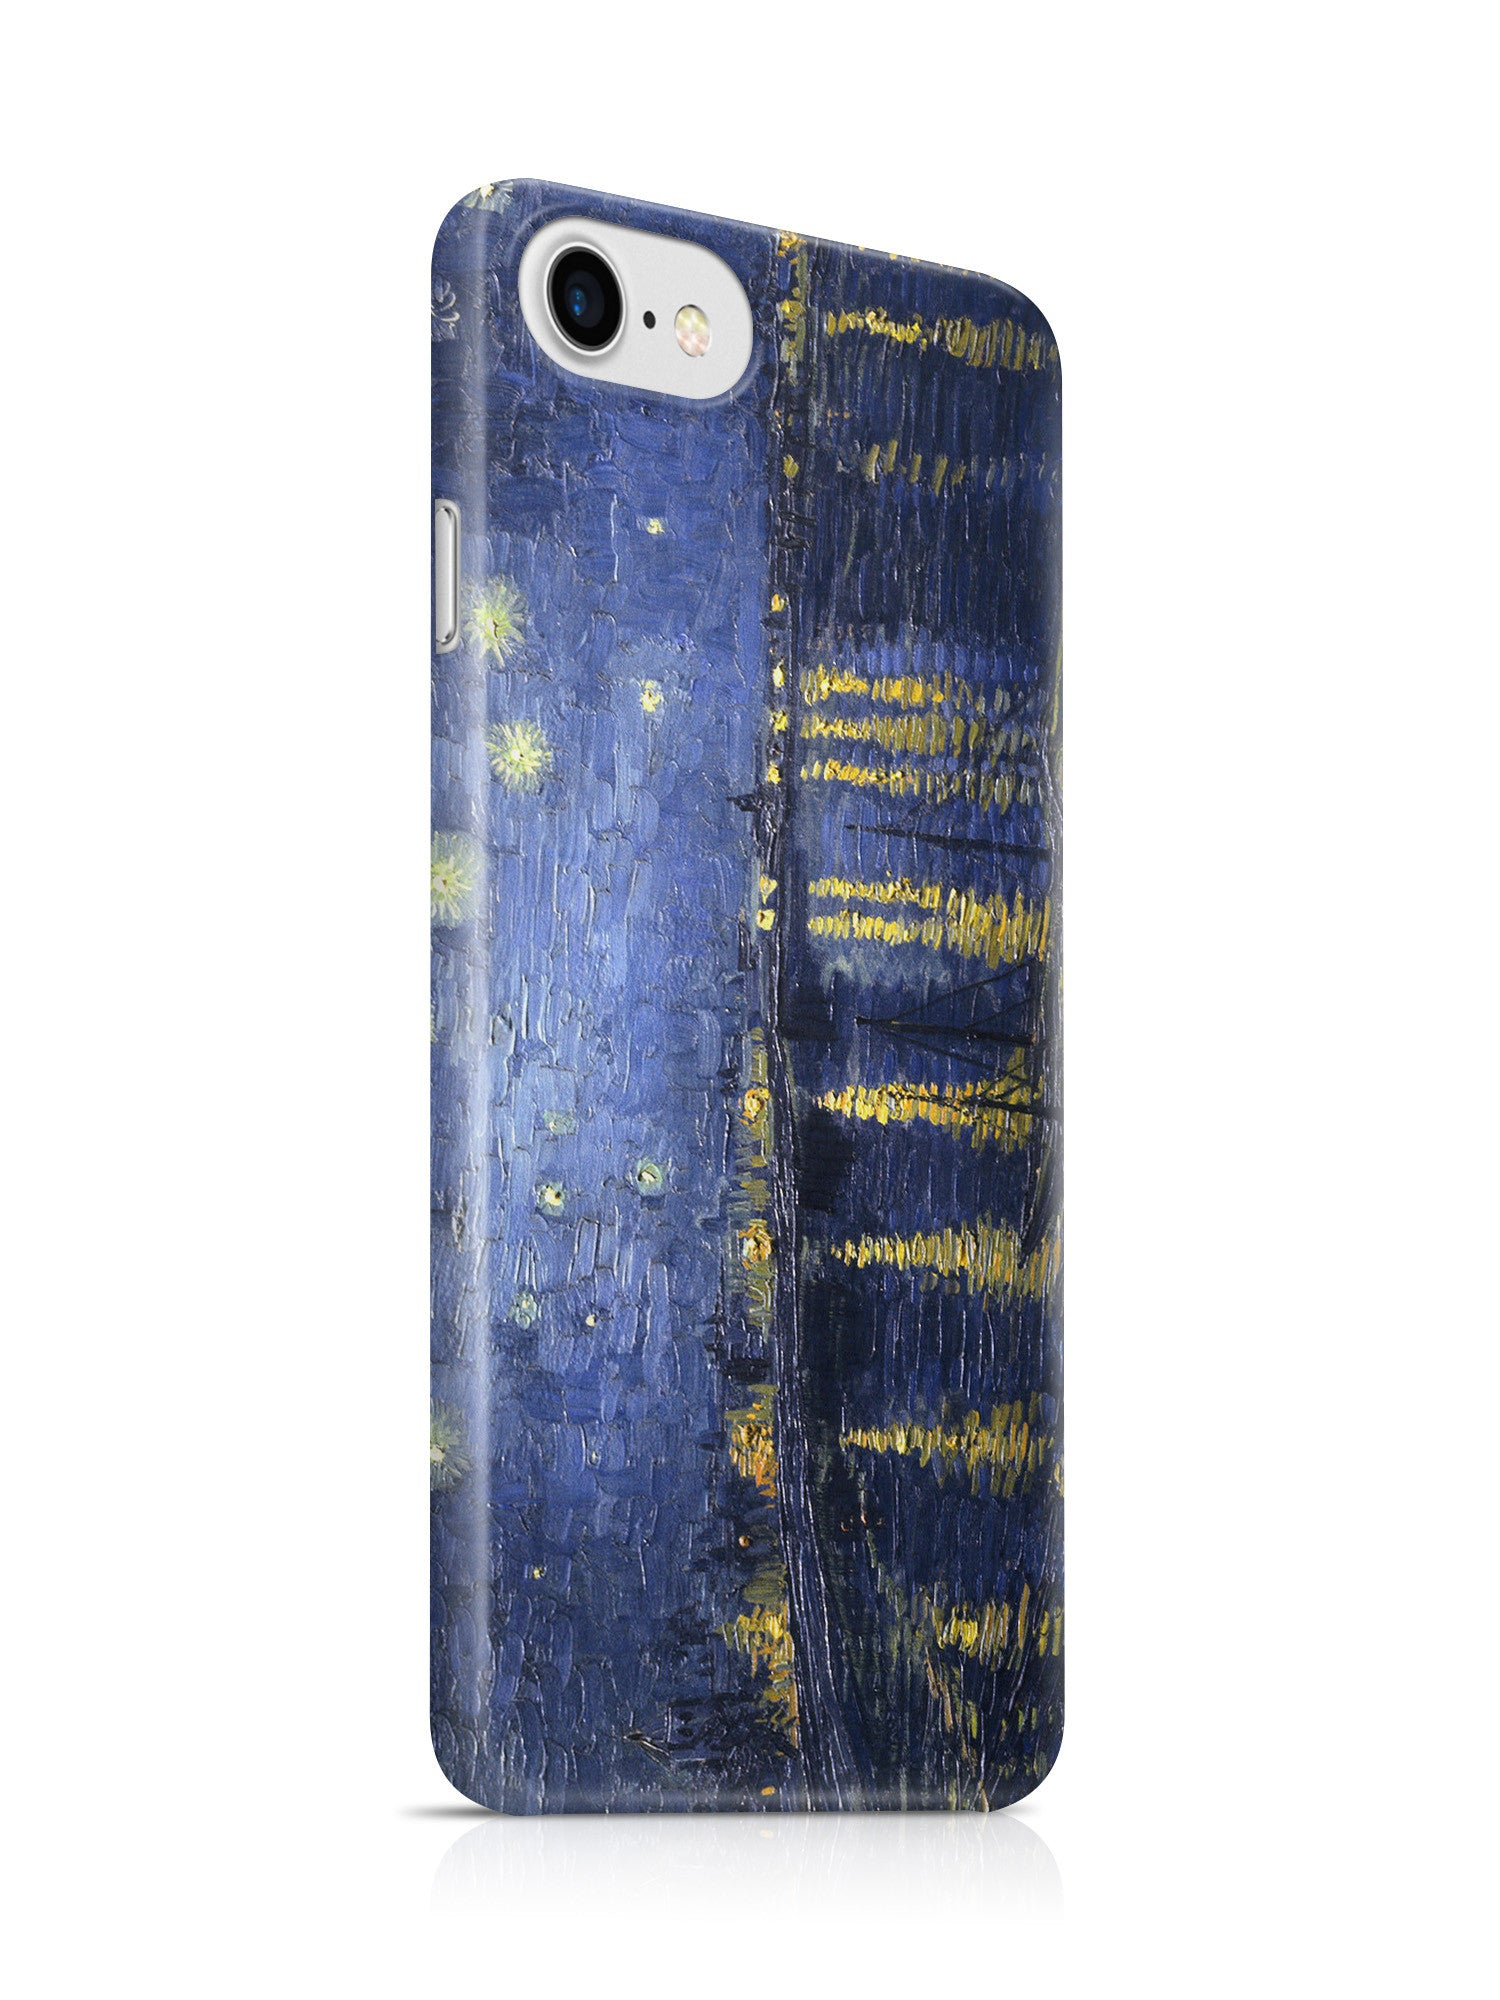 Vinteja Officially Licensed - Starry Night Over the Rhone by Van Gogh - Curated Case Cover For IPHONE 6/6S